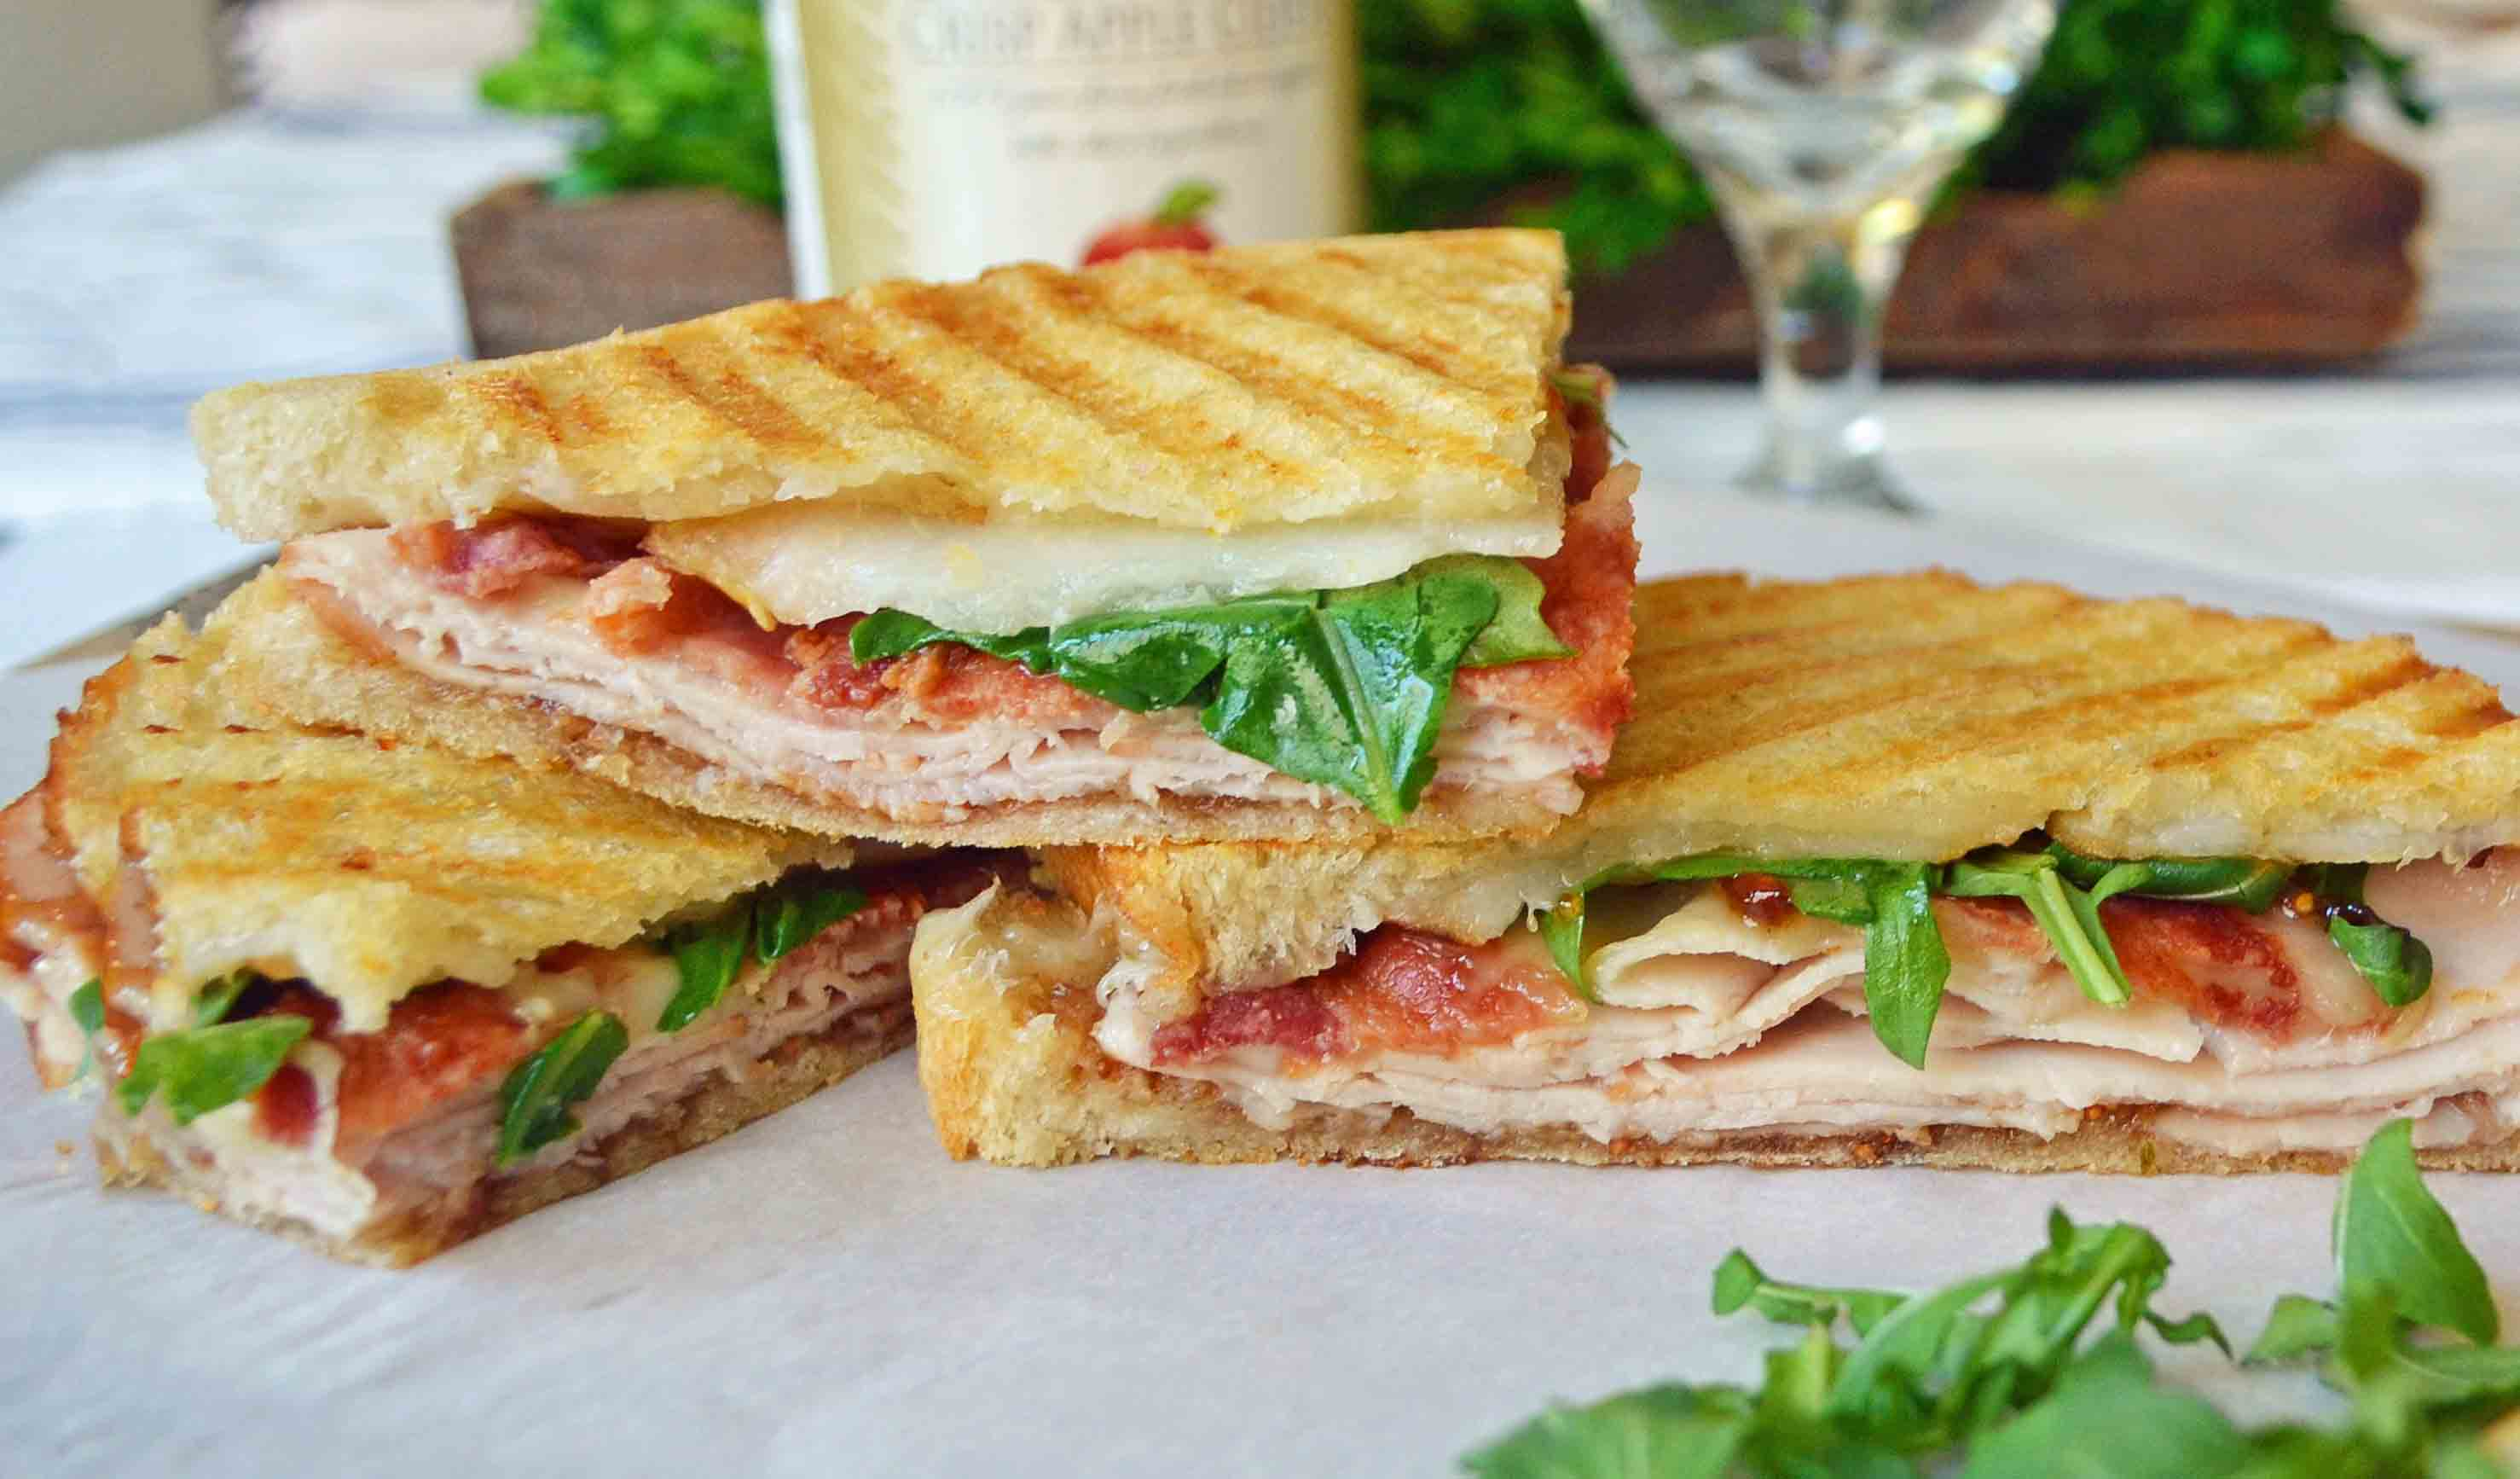 Turkey Bacon Panini with turkey, creamy havarti cheese, crispy bacon, fig spread, arugula, all on a buttered toasted bread. The perfect turkey bacon sandwich! www.modenrhoney.com